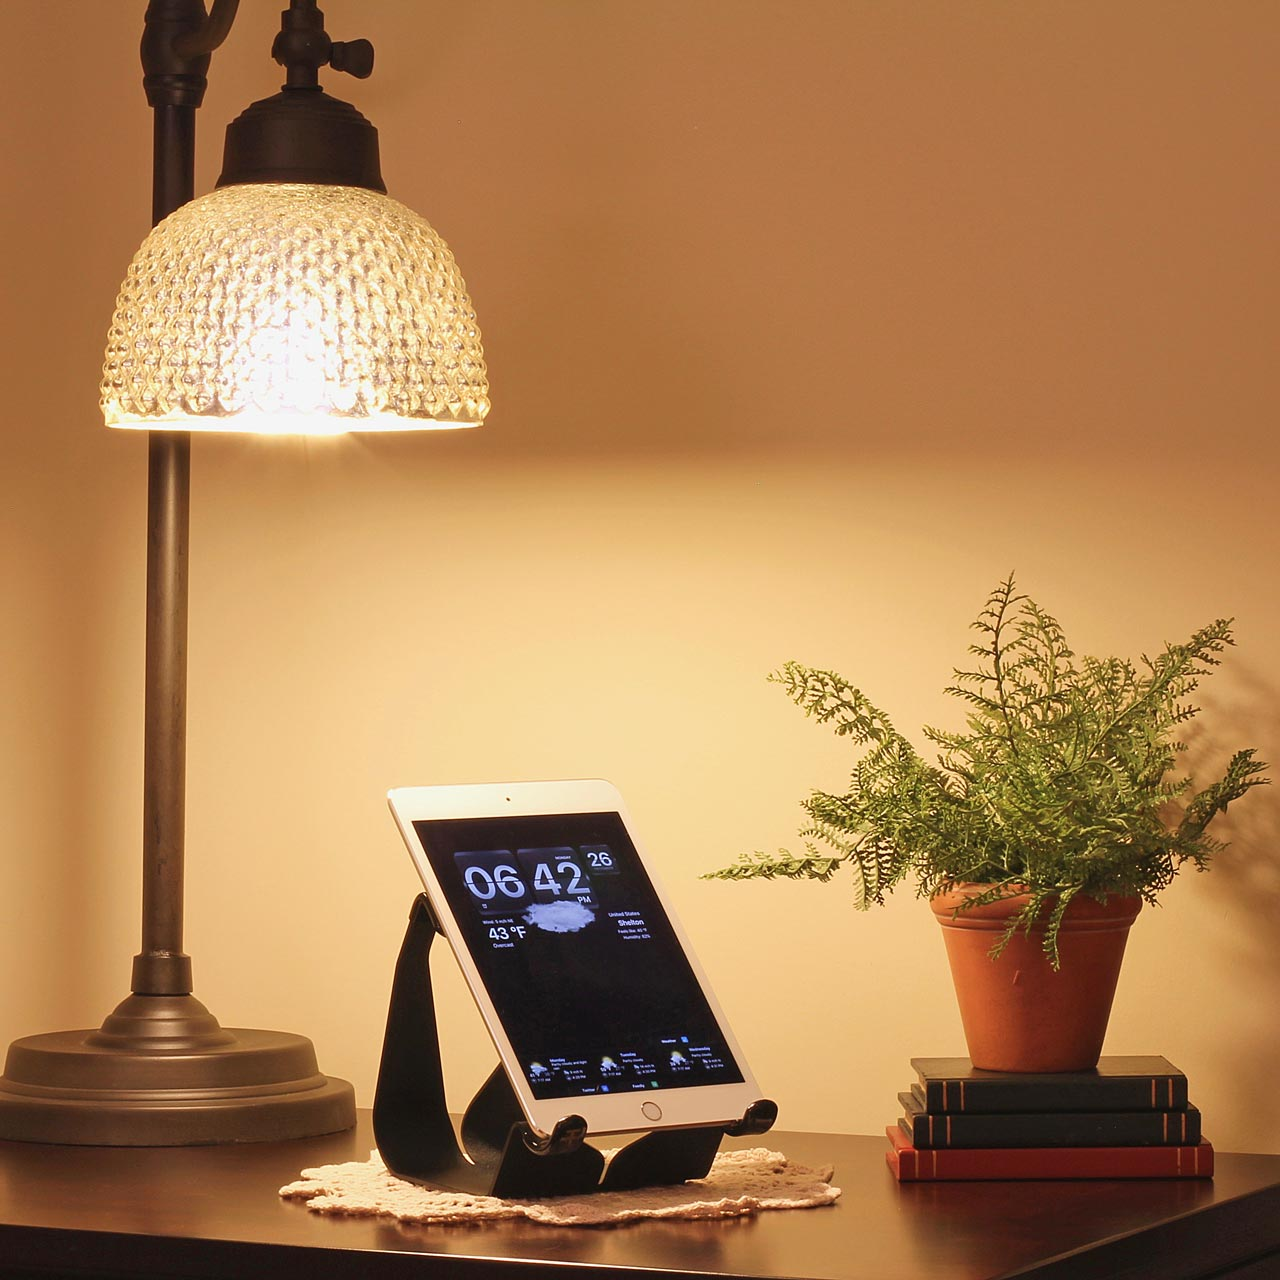 iPad stand used on a night stand